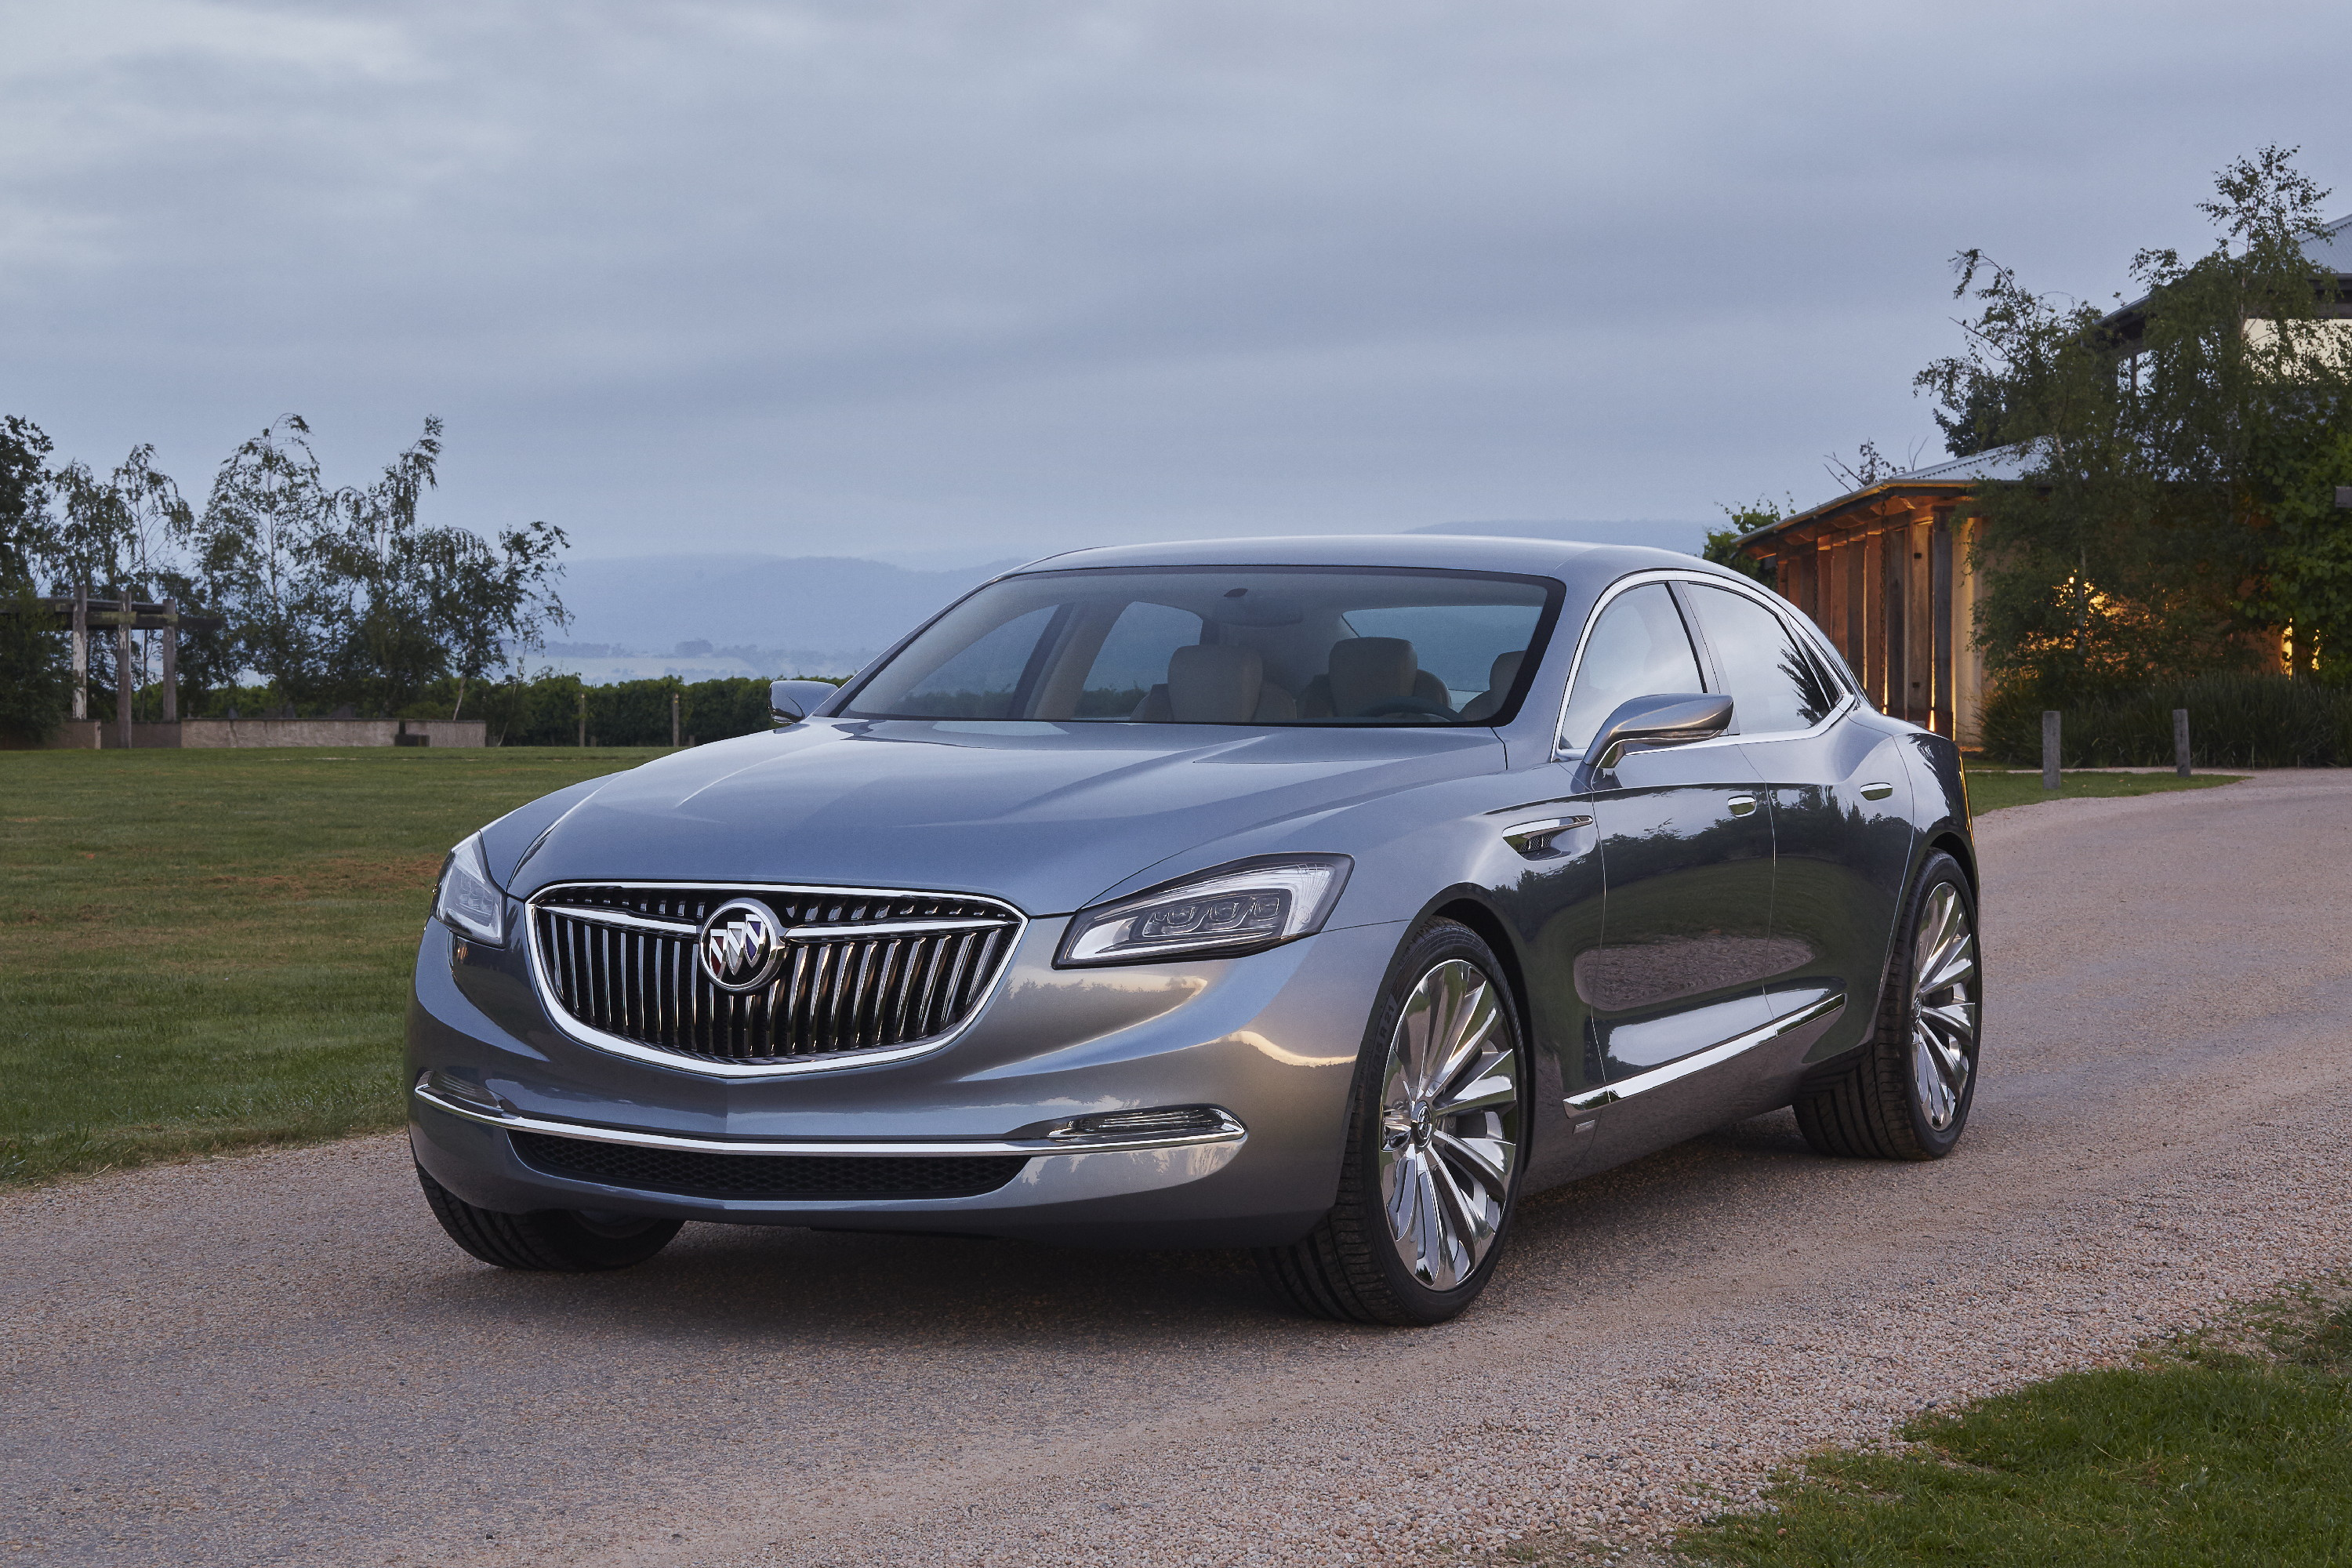 buick of size suvs features avenir showing ever mid suv image luxury first the grille enclave